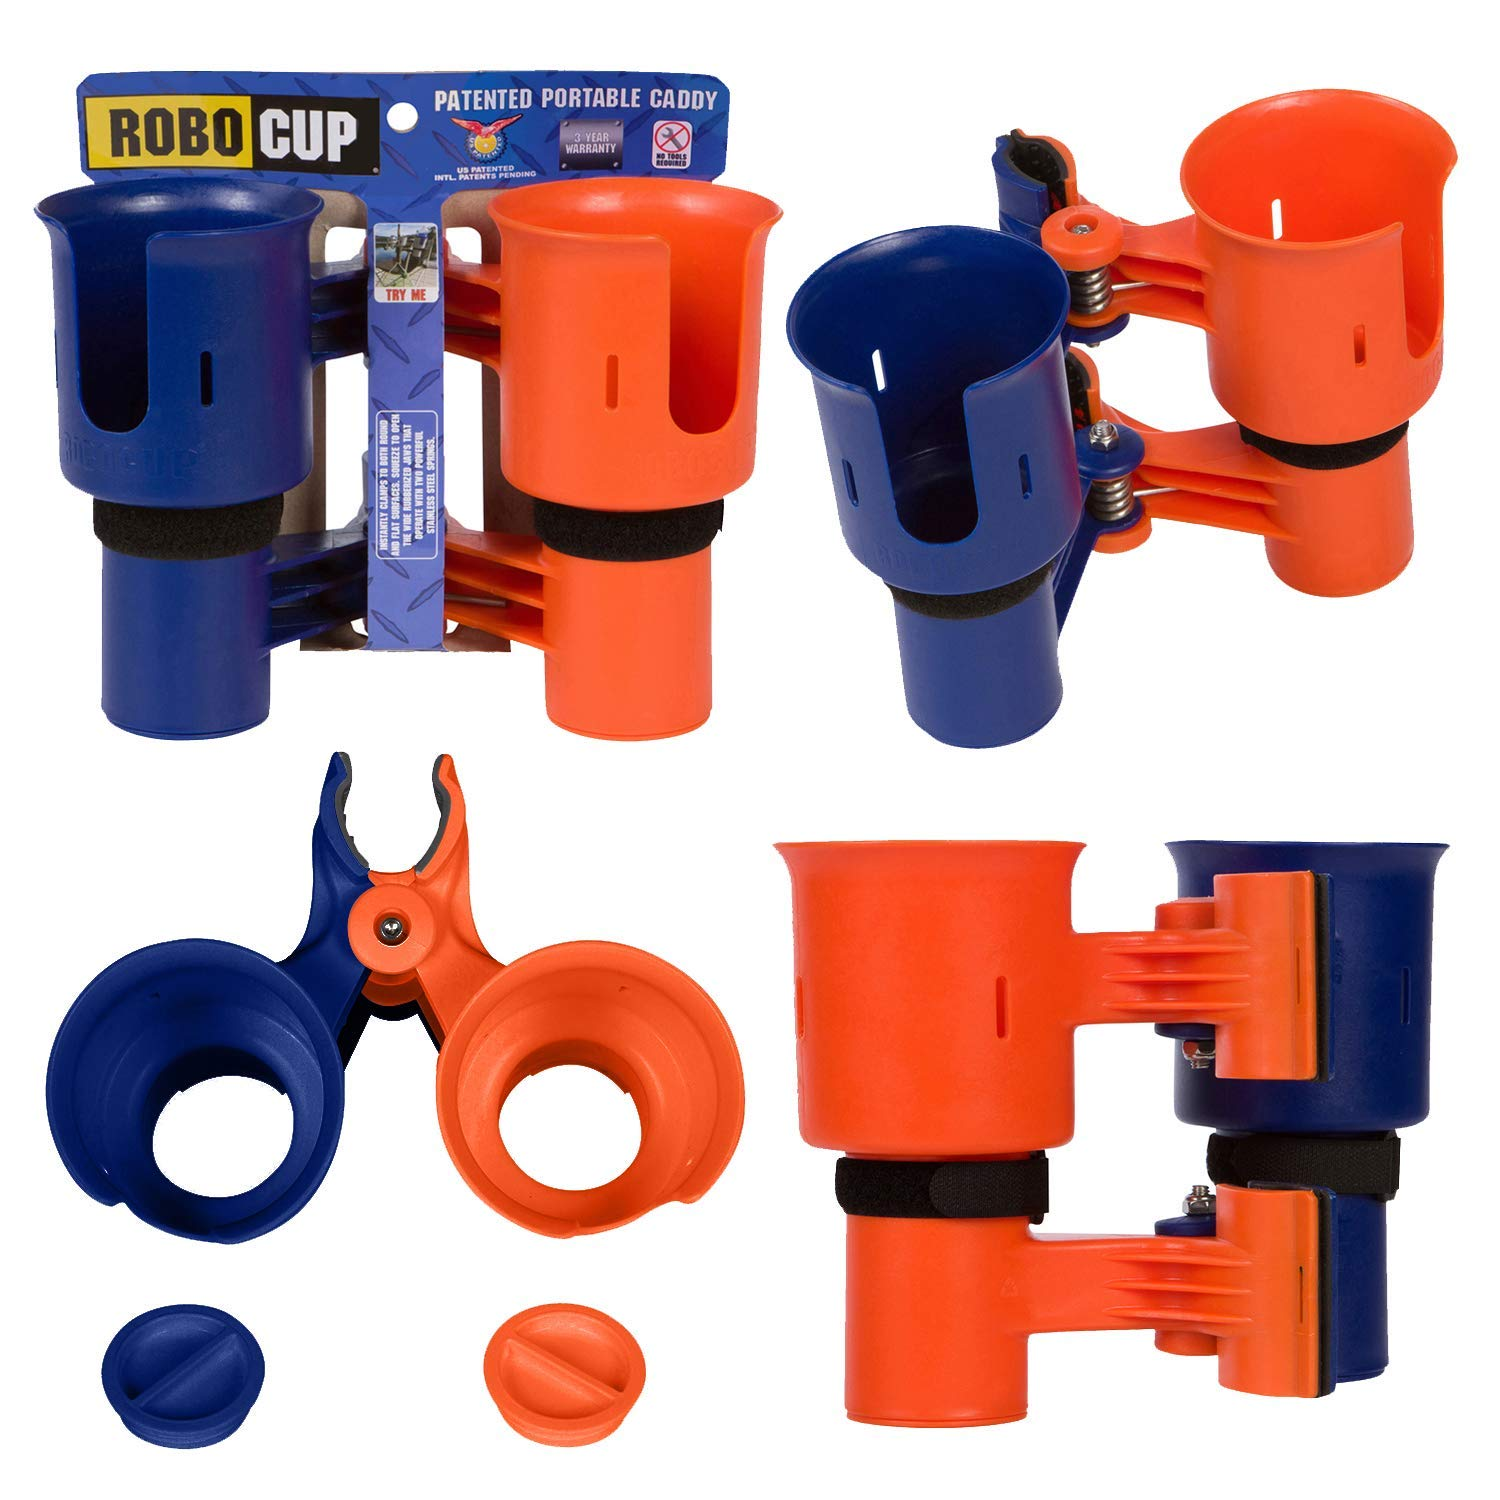 ROBOCUP, Orange&Navy, Upgraded Version, Best Cup Holder for Drinks, Fishing Rod/Pole, Boat, Beach Chair/Golf Cart/Wheelchair/Walker. by ROBOCUP